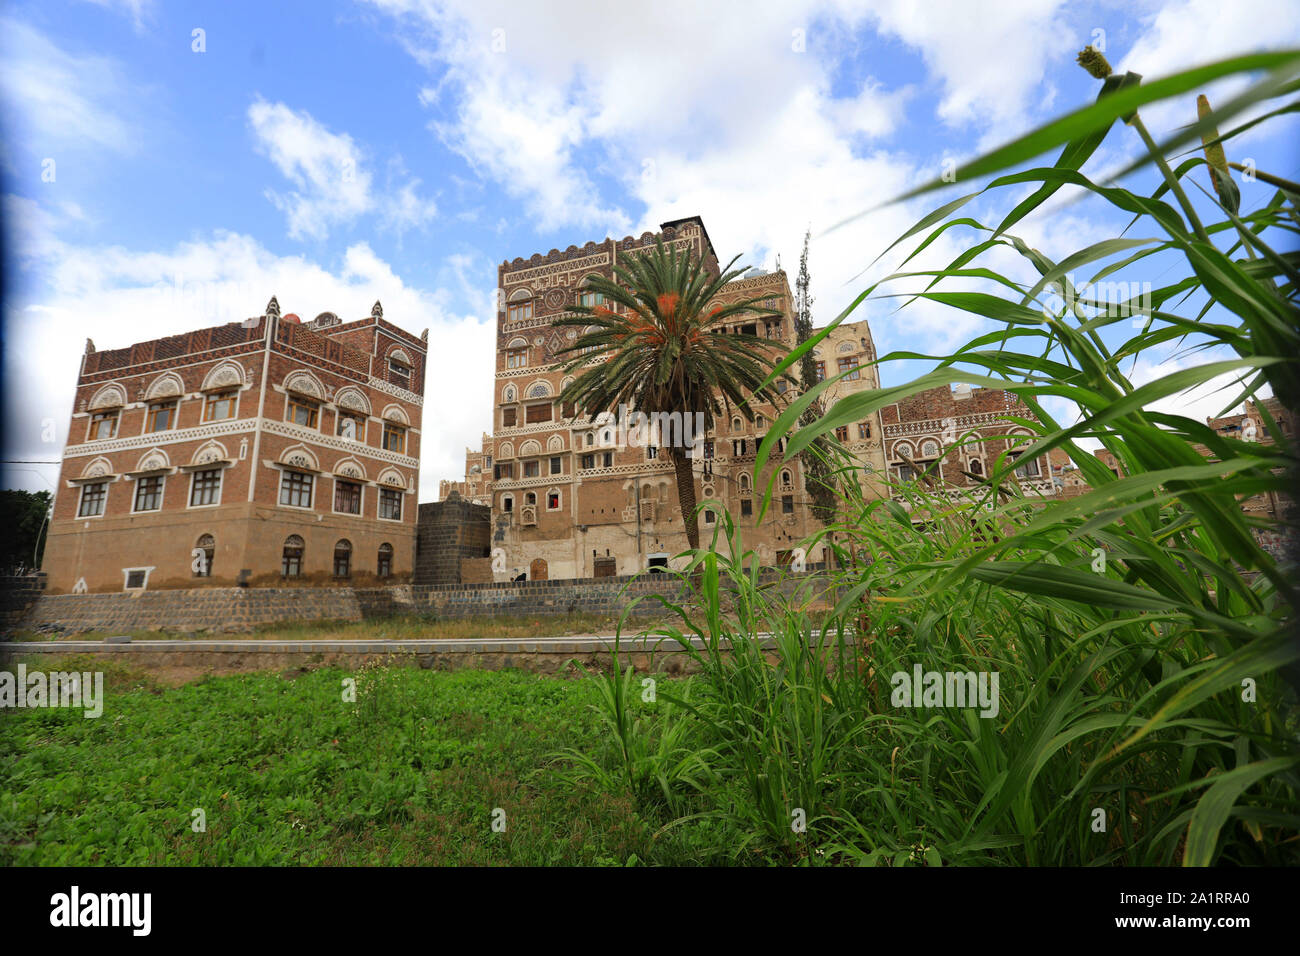 A view of the old building city of the Yemeni capital Sanaa on September 28, 2019. Stock Photo